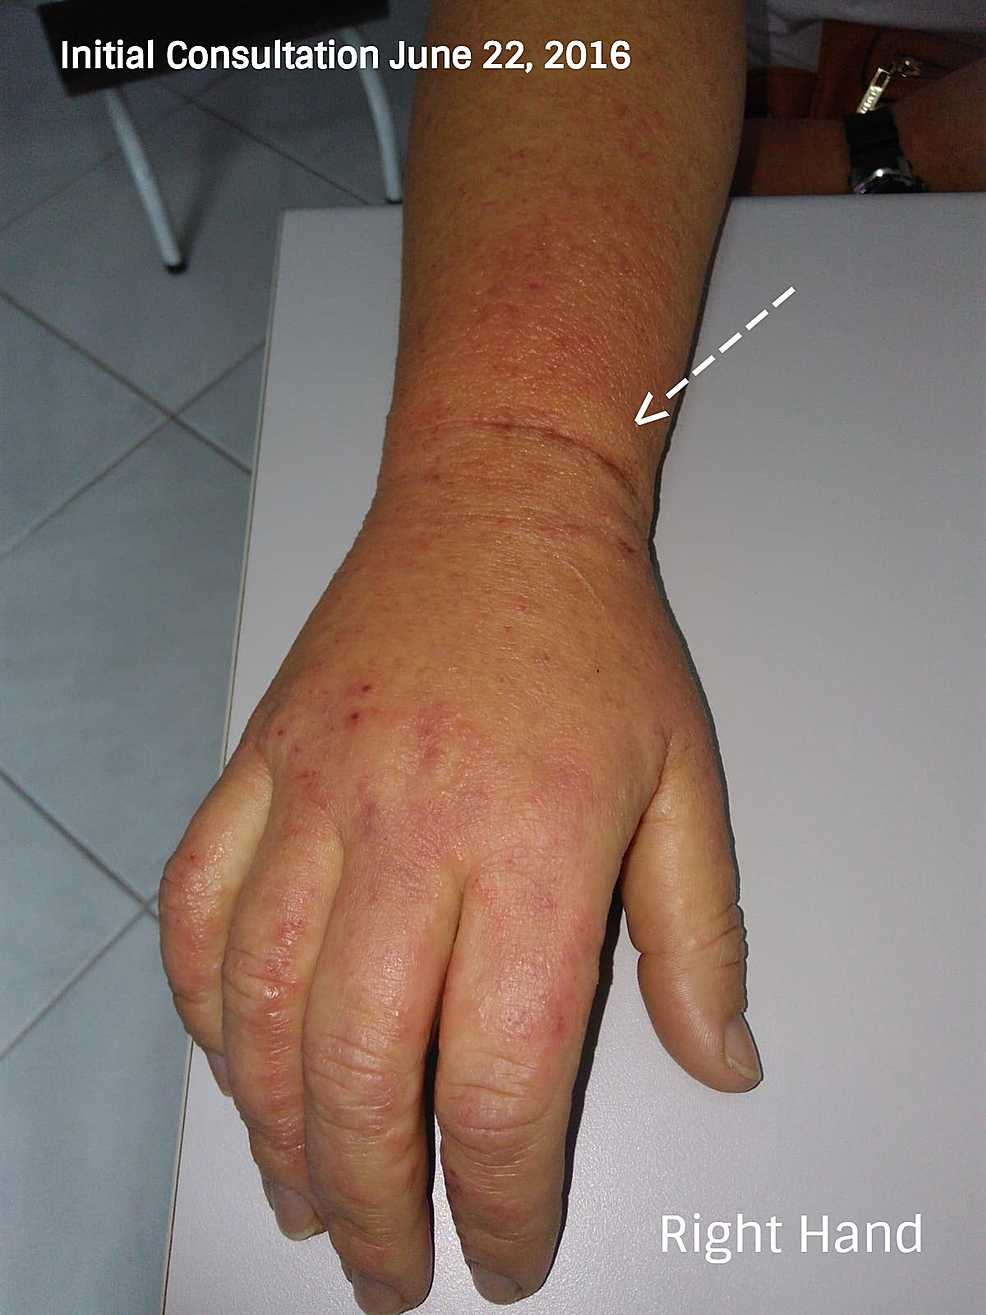 Bilateral-edema-of-upper-and-lower-extremities-(Initial-consultation)